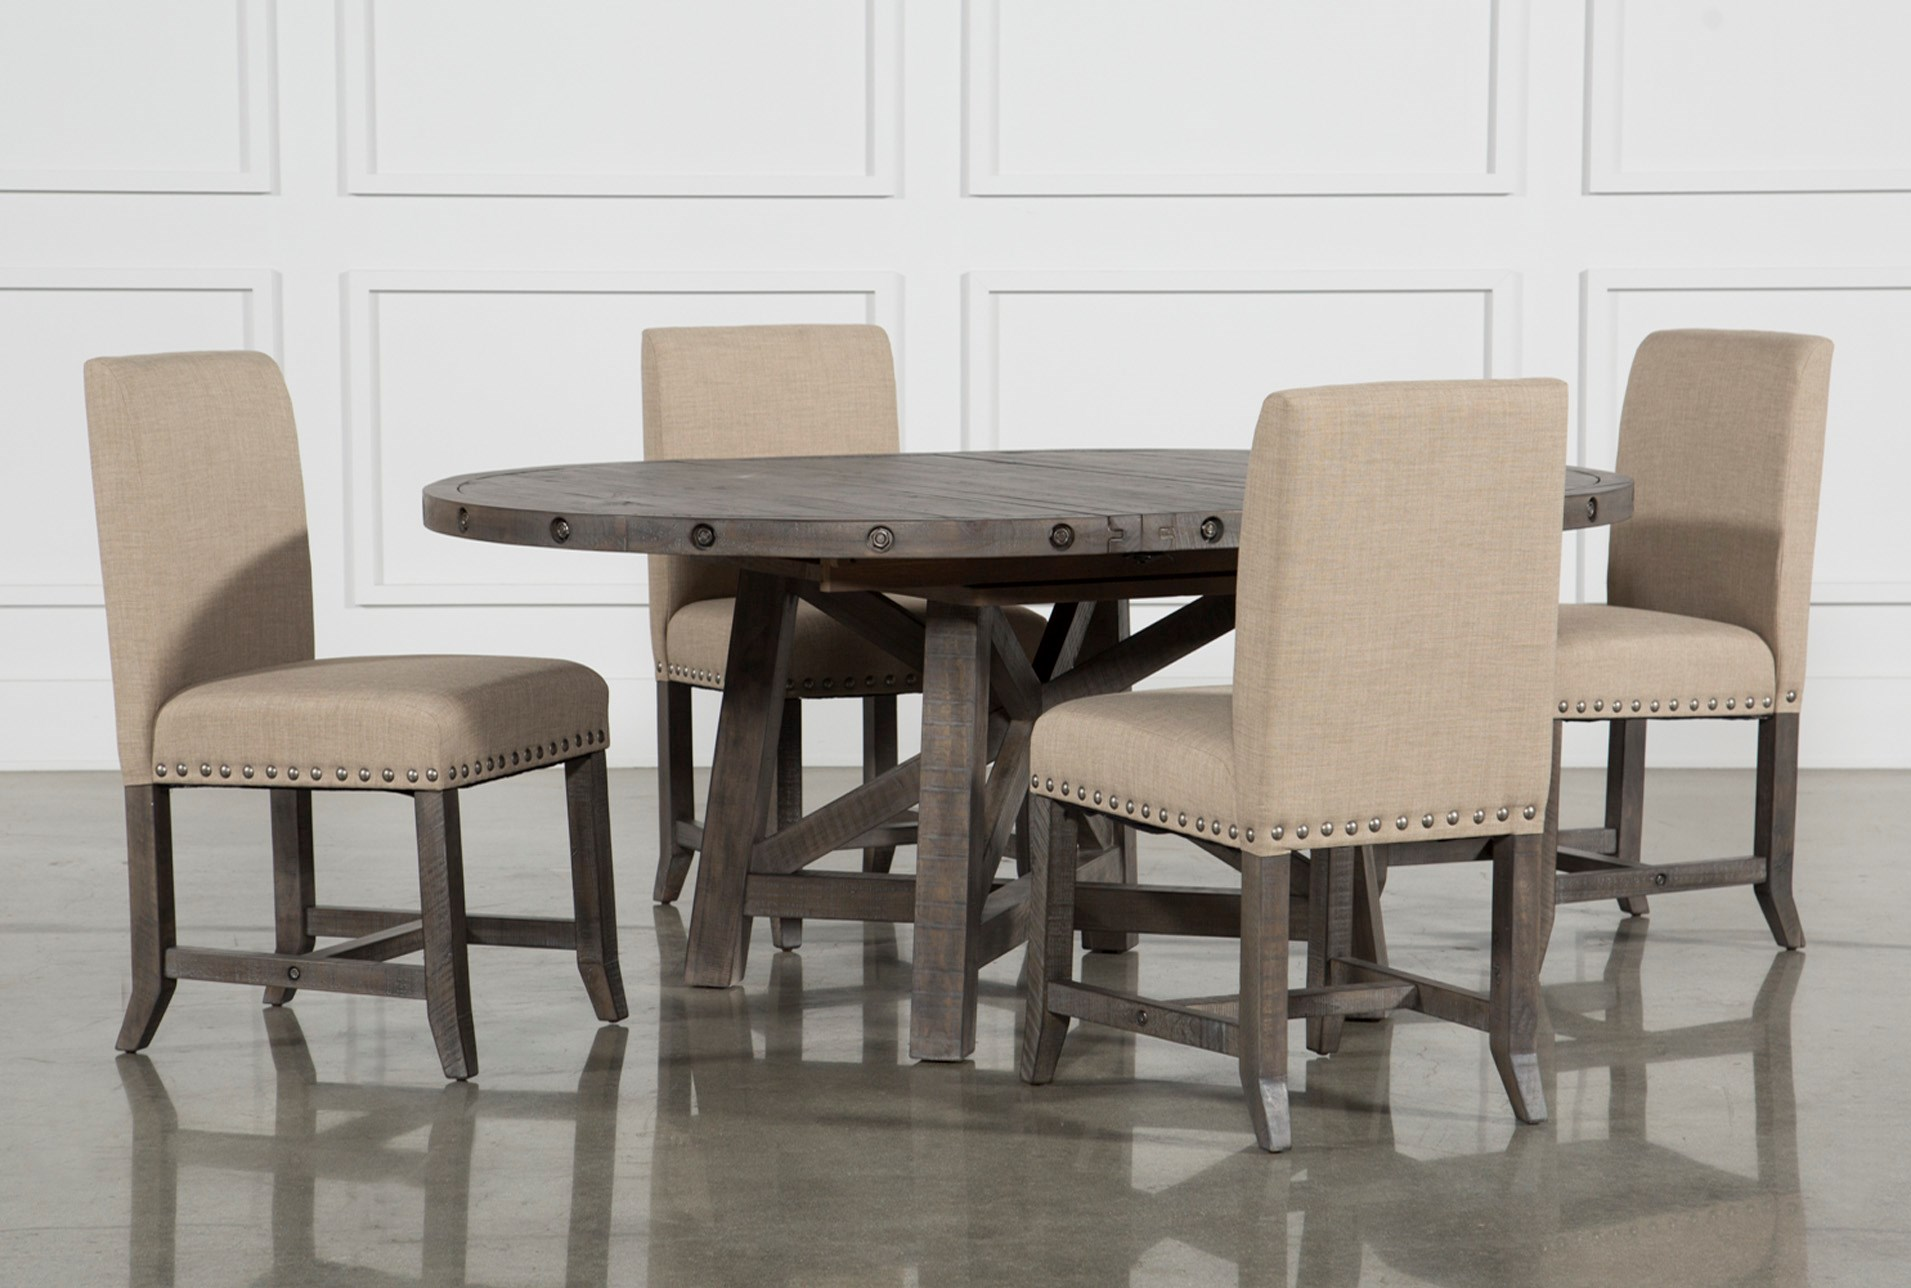 Jaxon grey 5 piece round extension dining set w upholstered chairs qty 1 has been successfully added to your cart